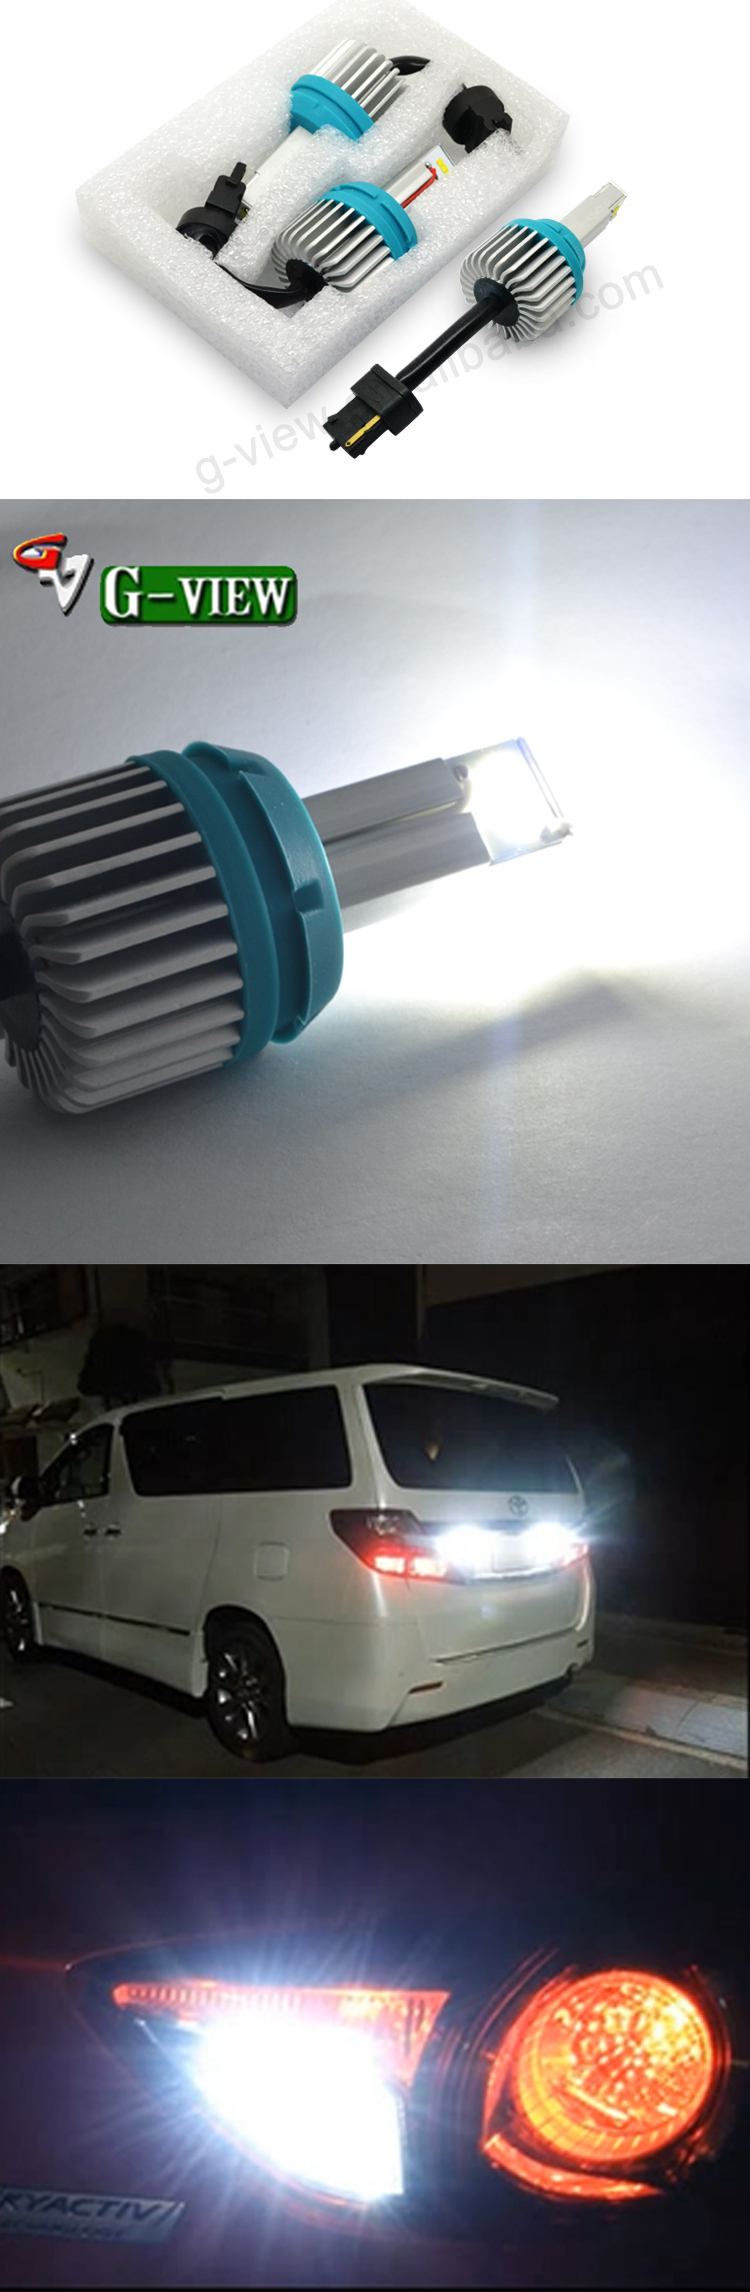 Superbright 1200lm 9 pcs CSP chip T20 7440 auto led light reversing car light bulb